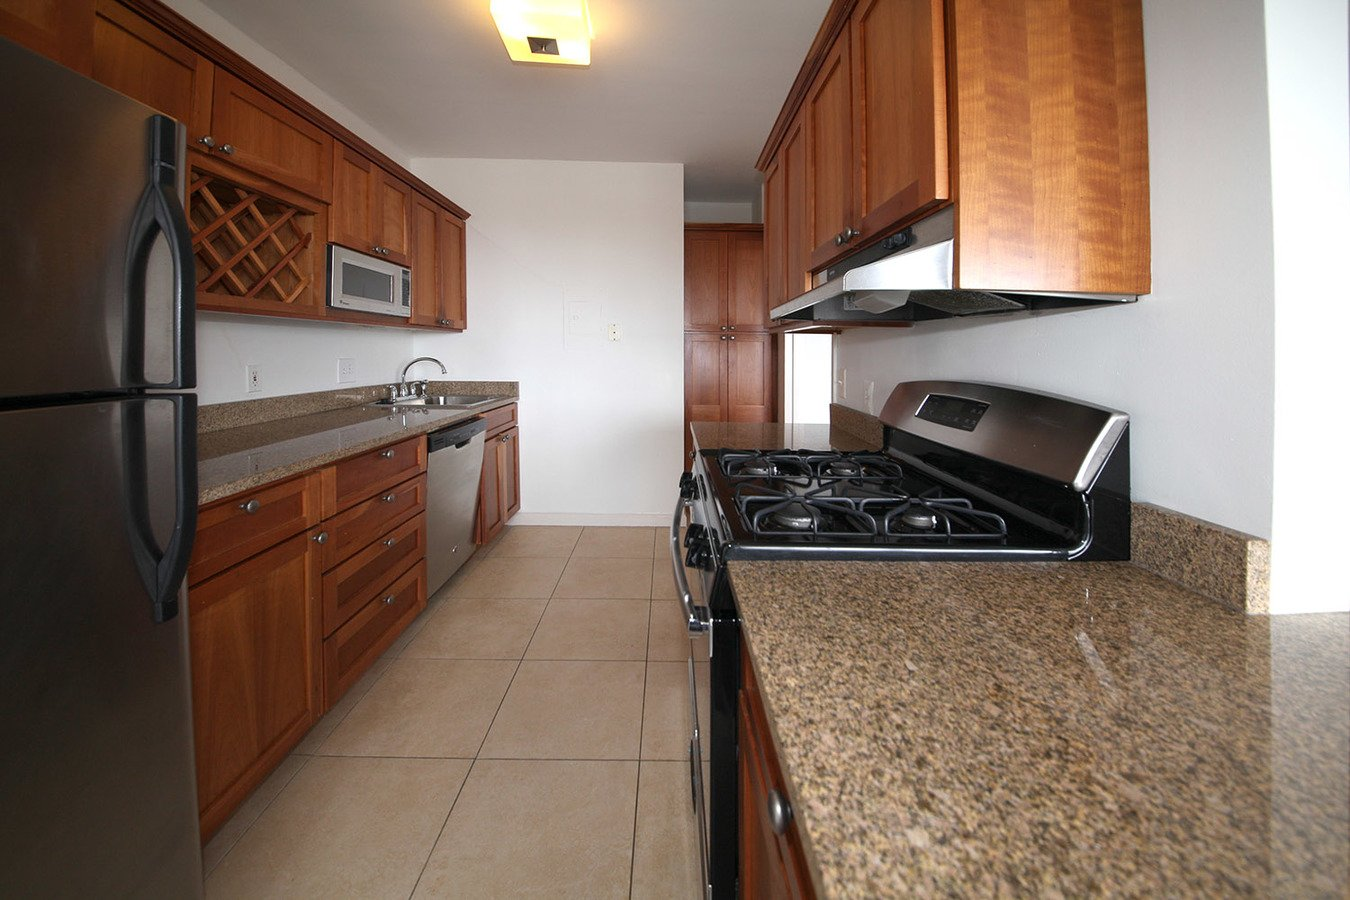 1 Bedroom 1 Bathroom Apartment for rent at Dorchester in St Louis, MO